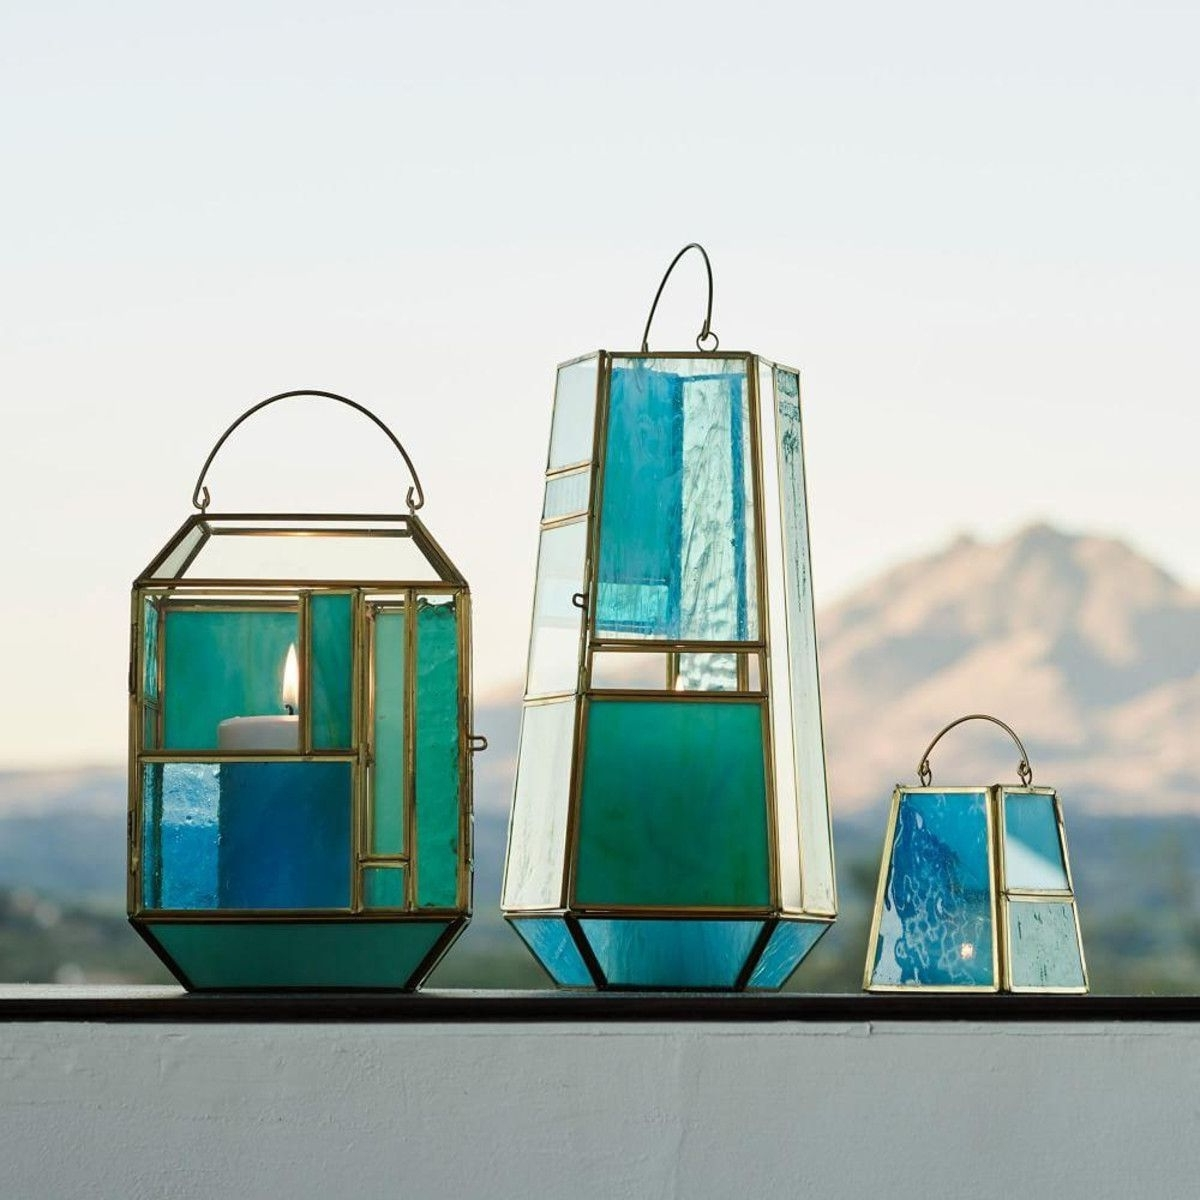 Famous Hang These Stained Glass Inspired Lanterns Inside Or Outside, To For Outdoor Glass Lanterns (View 6 of 20)